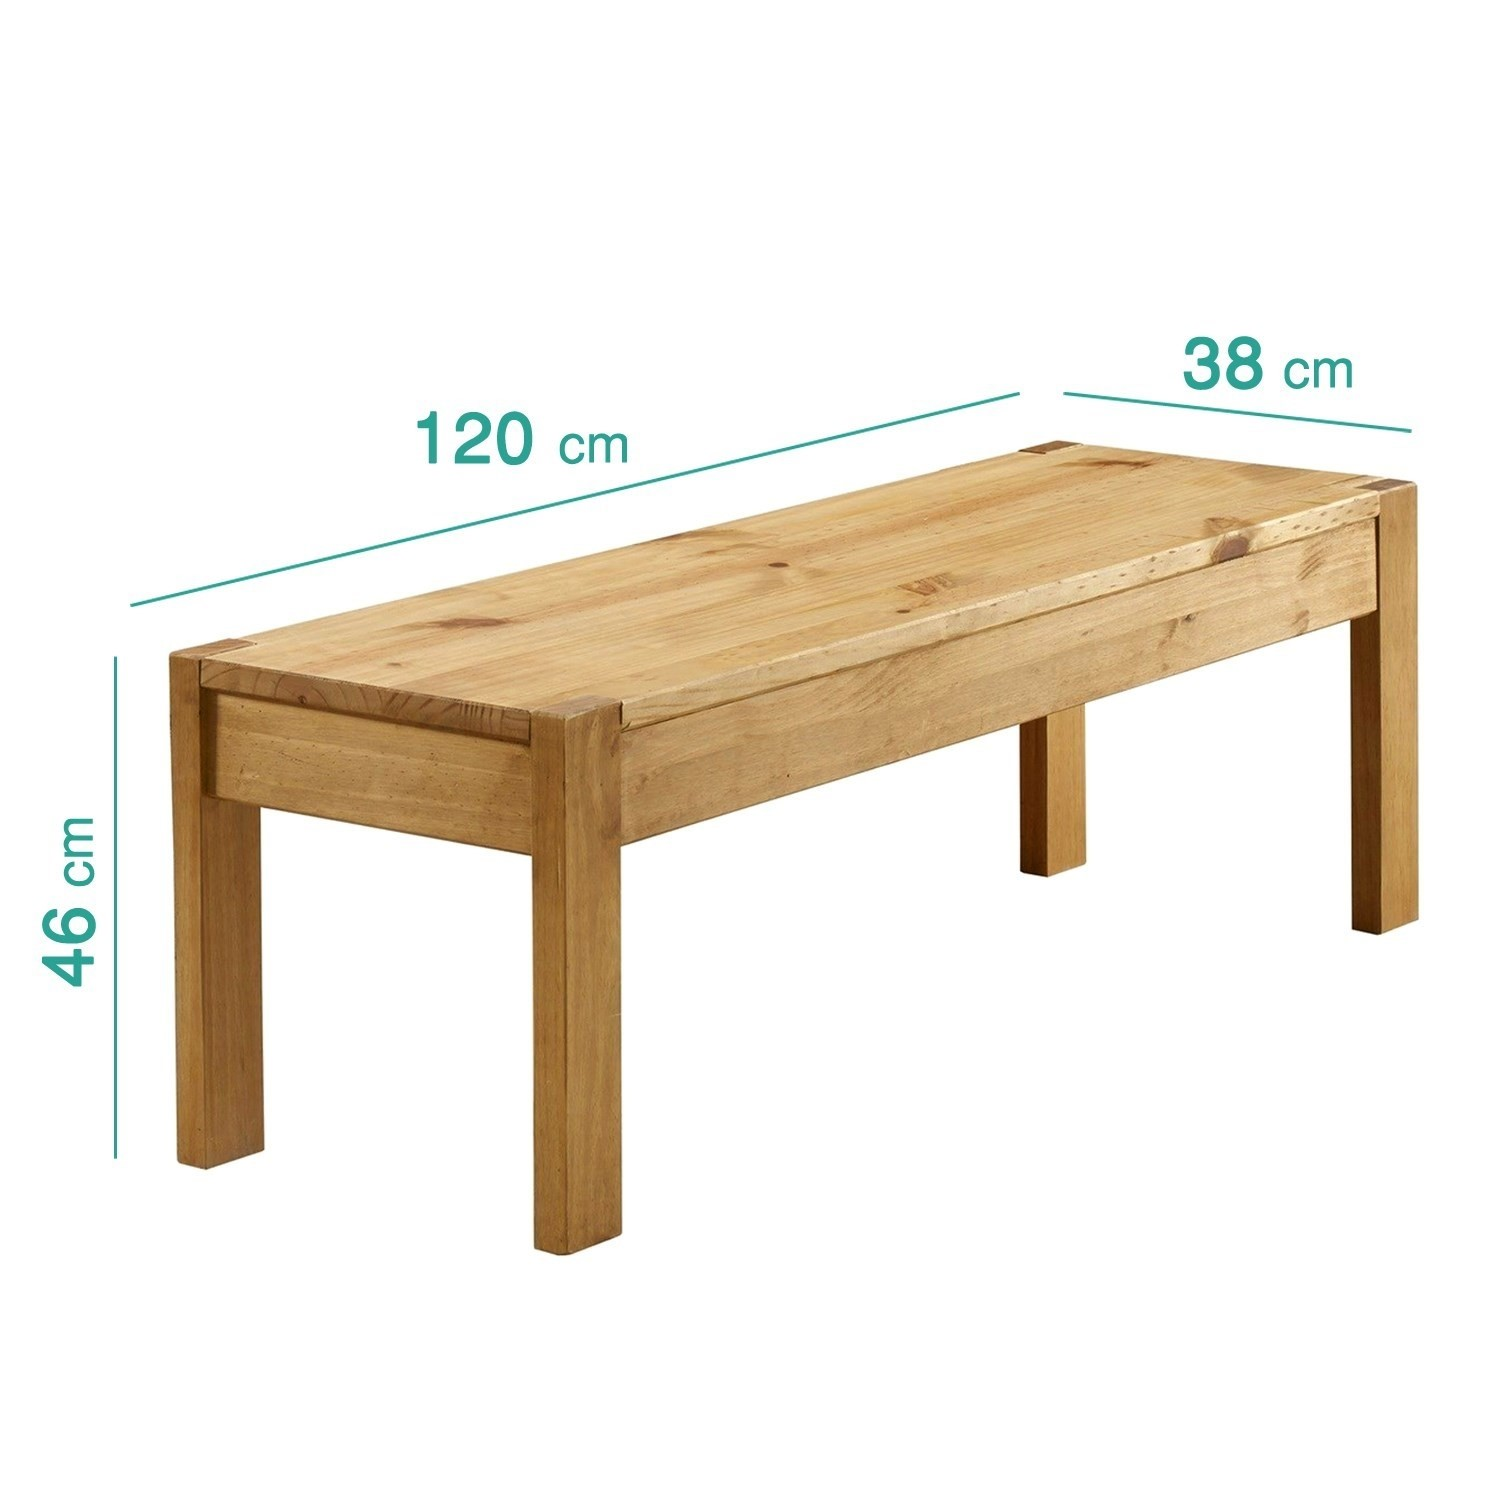 Cool Emerson Solid Pine Wood Dining Set With 1 Dining Table 2 Benches Ibusinesslaw Wood Chair Design Ideas Ibusinesslaworg